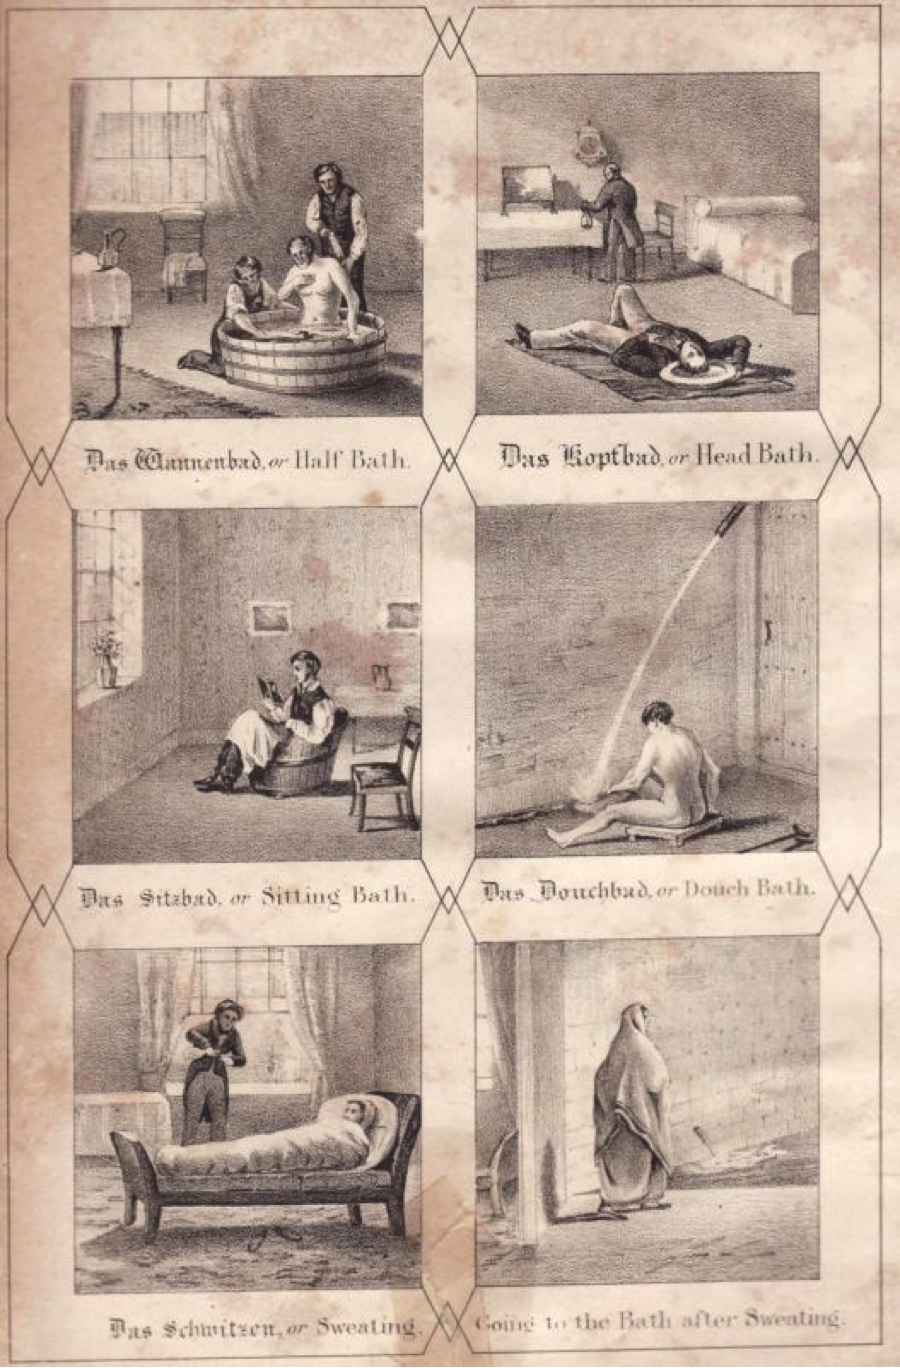 History of physical therapy treatment - The Wet Sheet Treatment The Upper And Lower Douches And The Plunge Bath Were Only Some Of The Therapies That Doctors At Malvern S Hydropathy Clinic